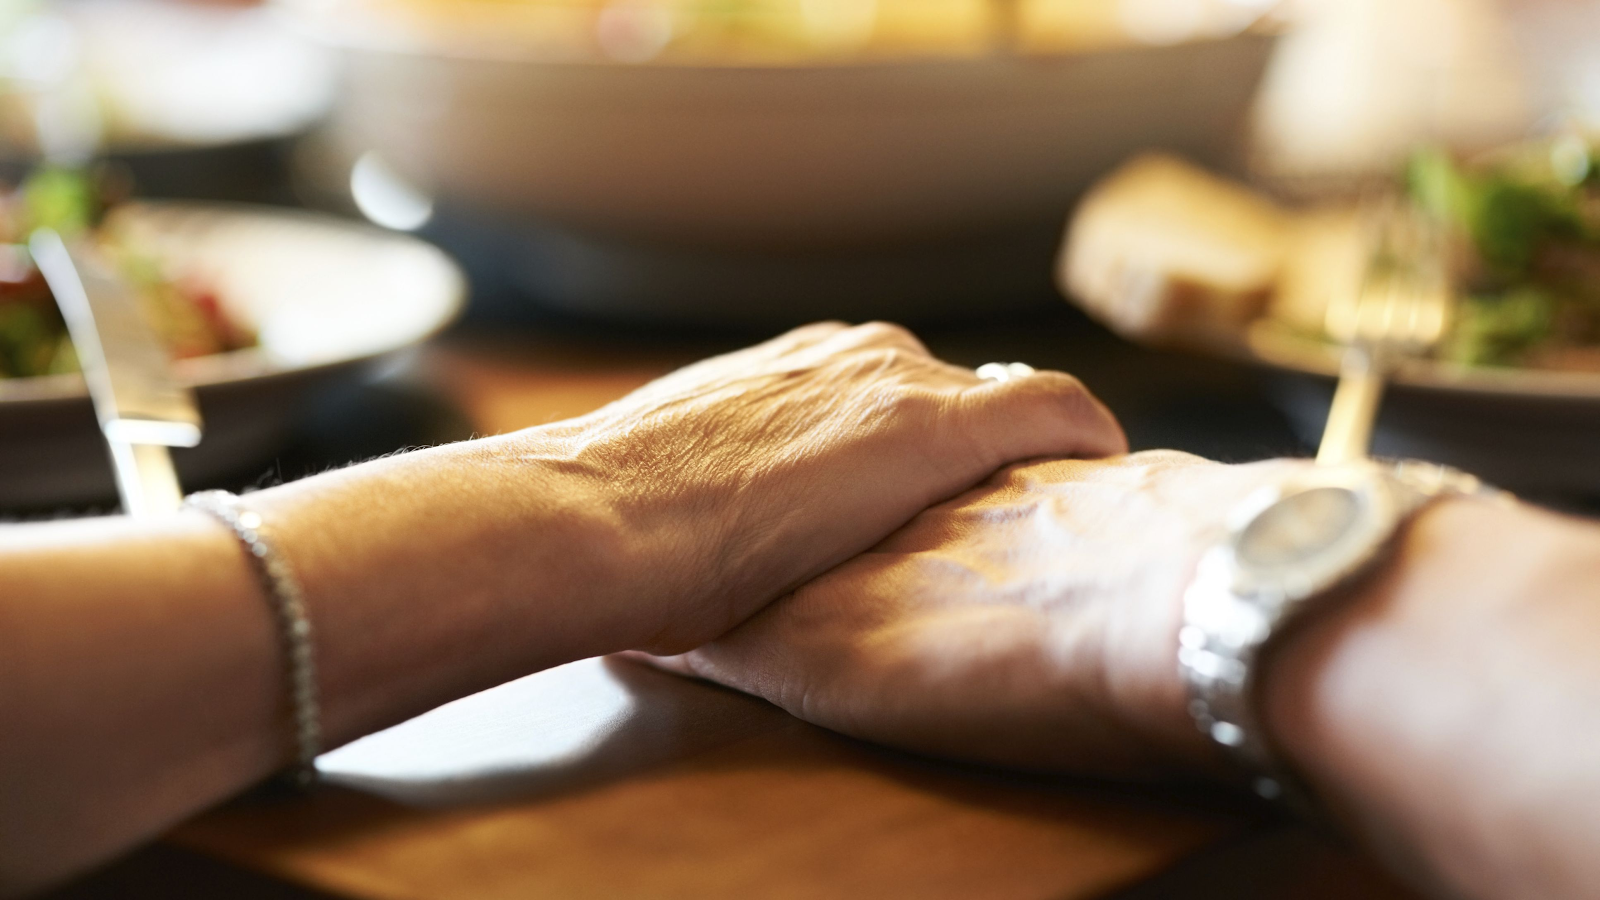 Picture of a person's hand holding another person's hand on top of a dining table